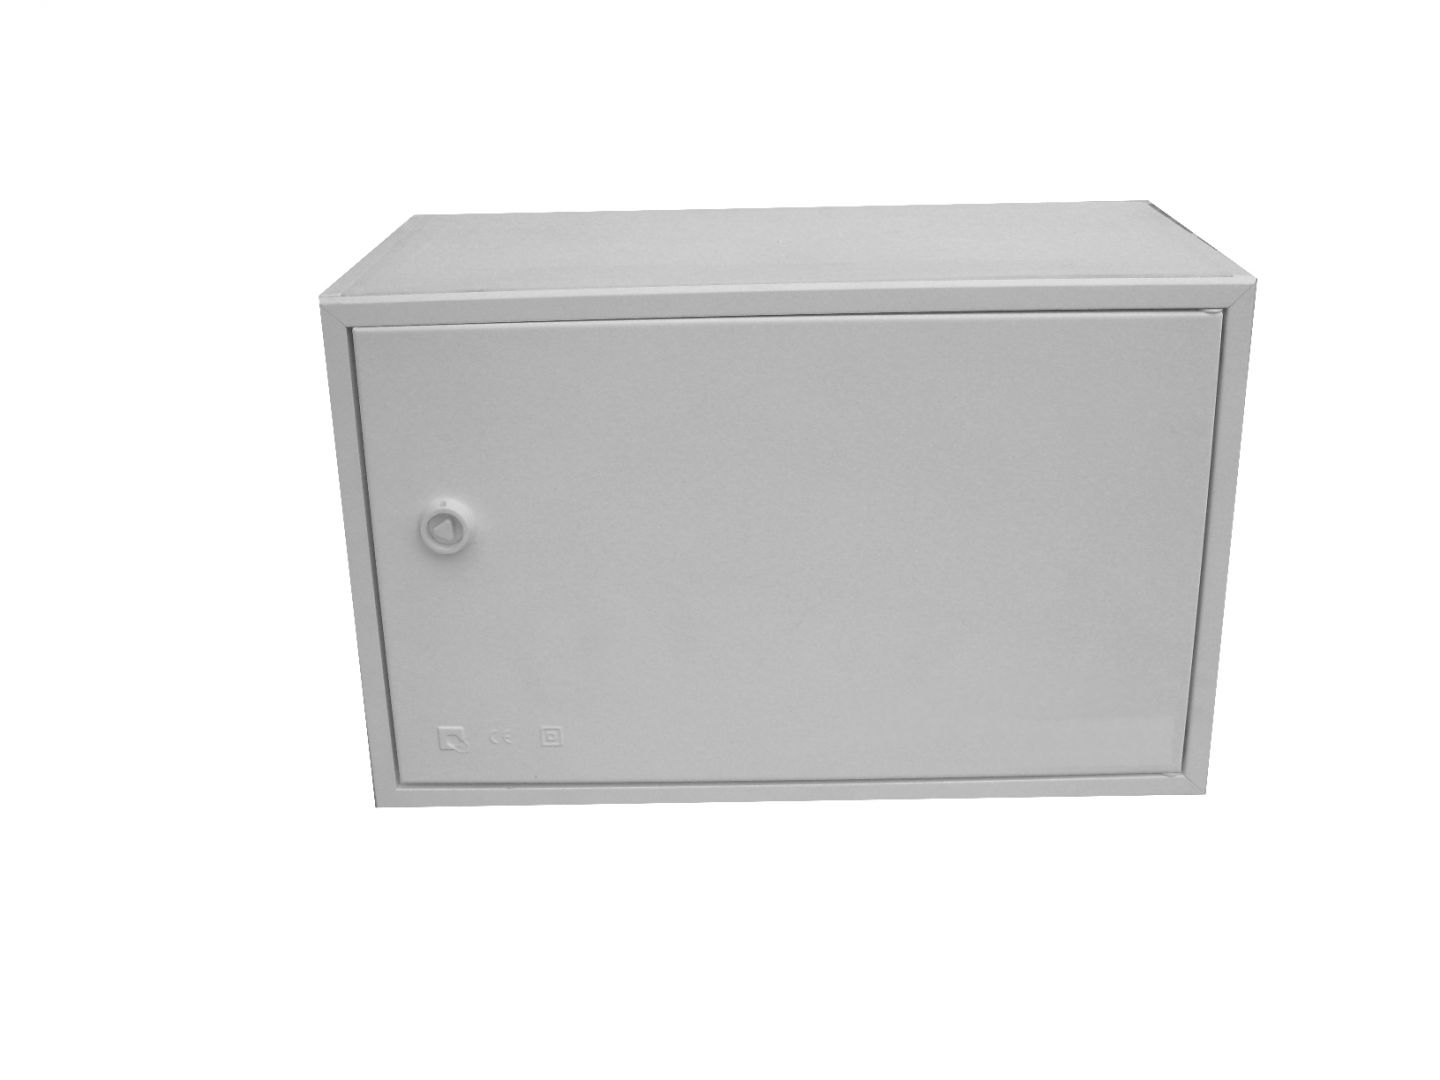 EMPTY BUILT-IN VISBOX BOX WITH DOOR AND FRAME 380X250X130